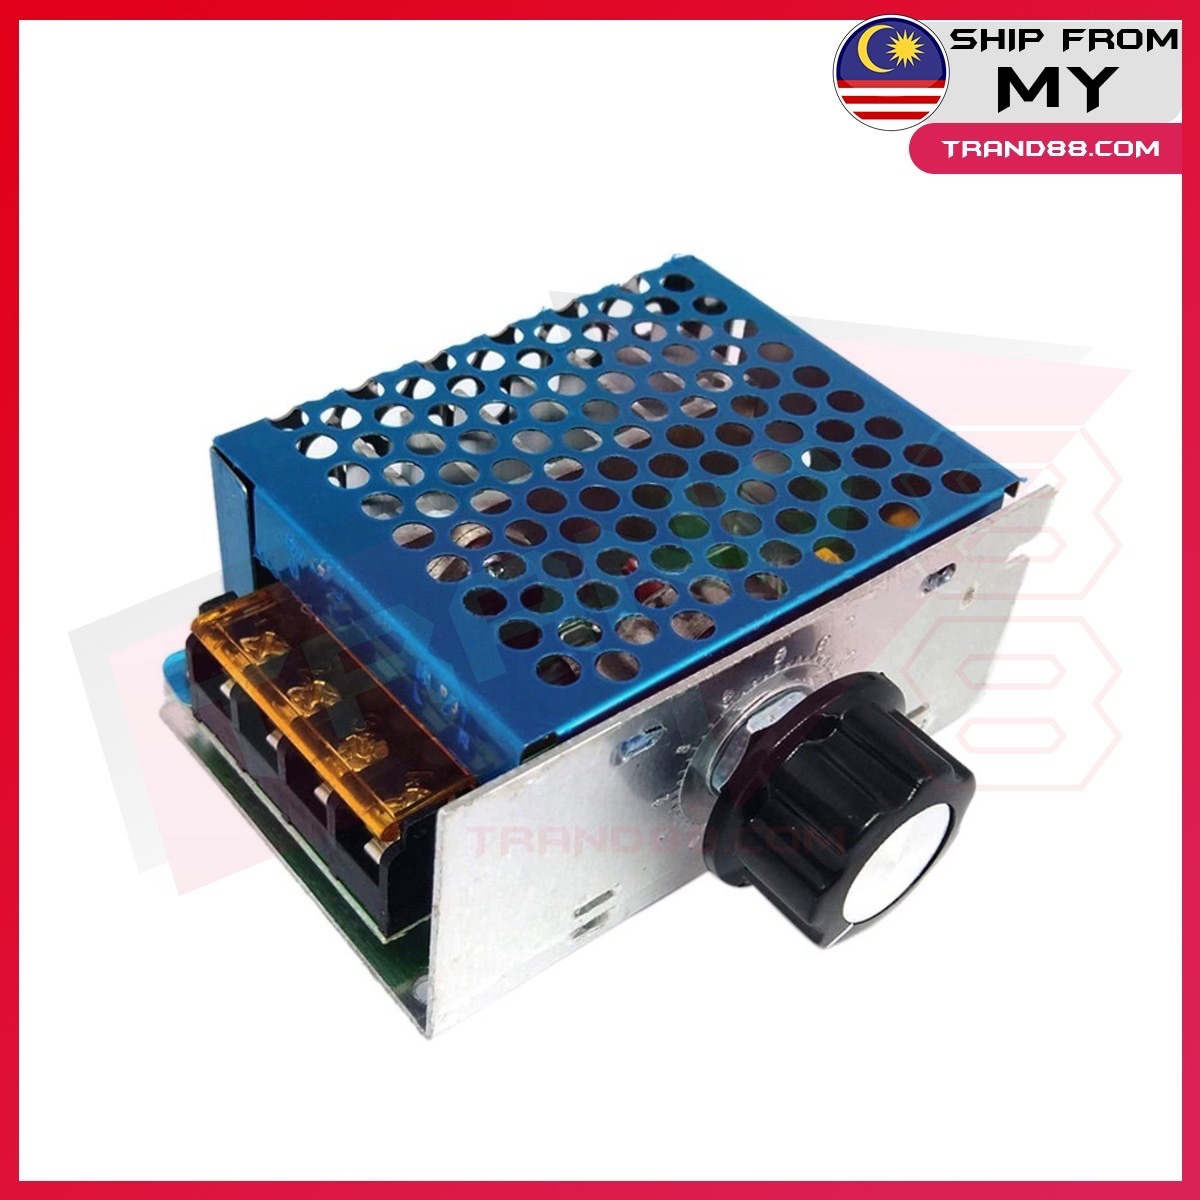 AC 220V 4000W SCR Voltage Regulator Dimming Dimmers Motor Speed Controller Thermostat Electronic Voltage Regulator Module